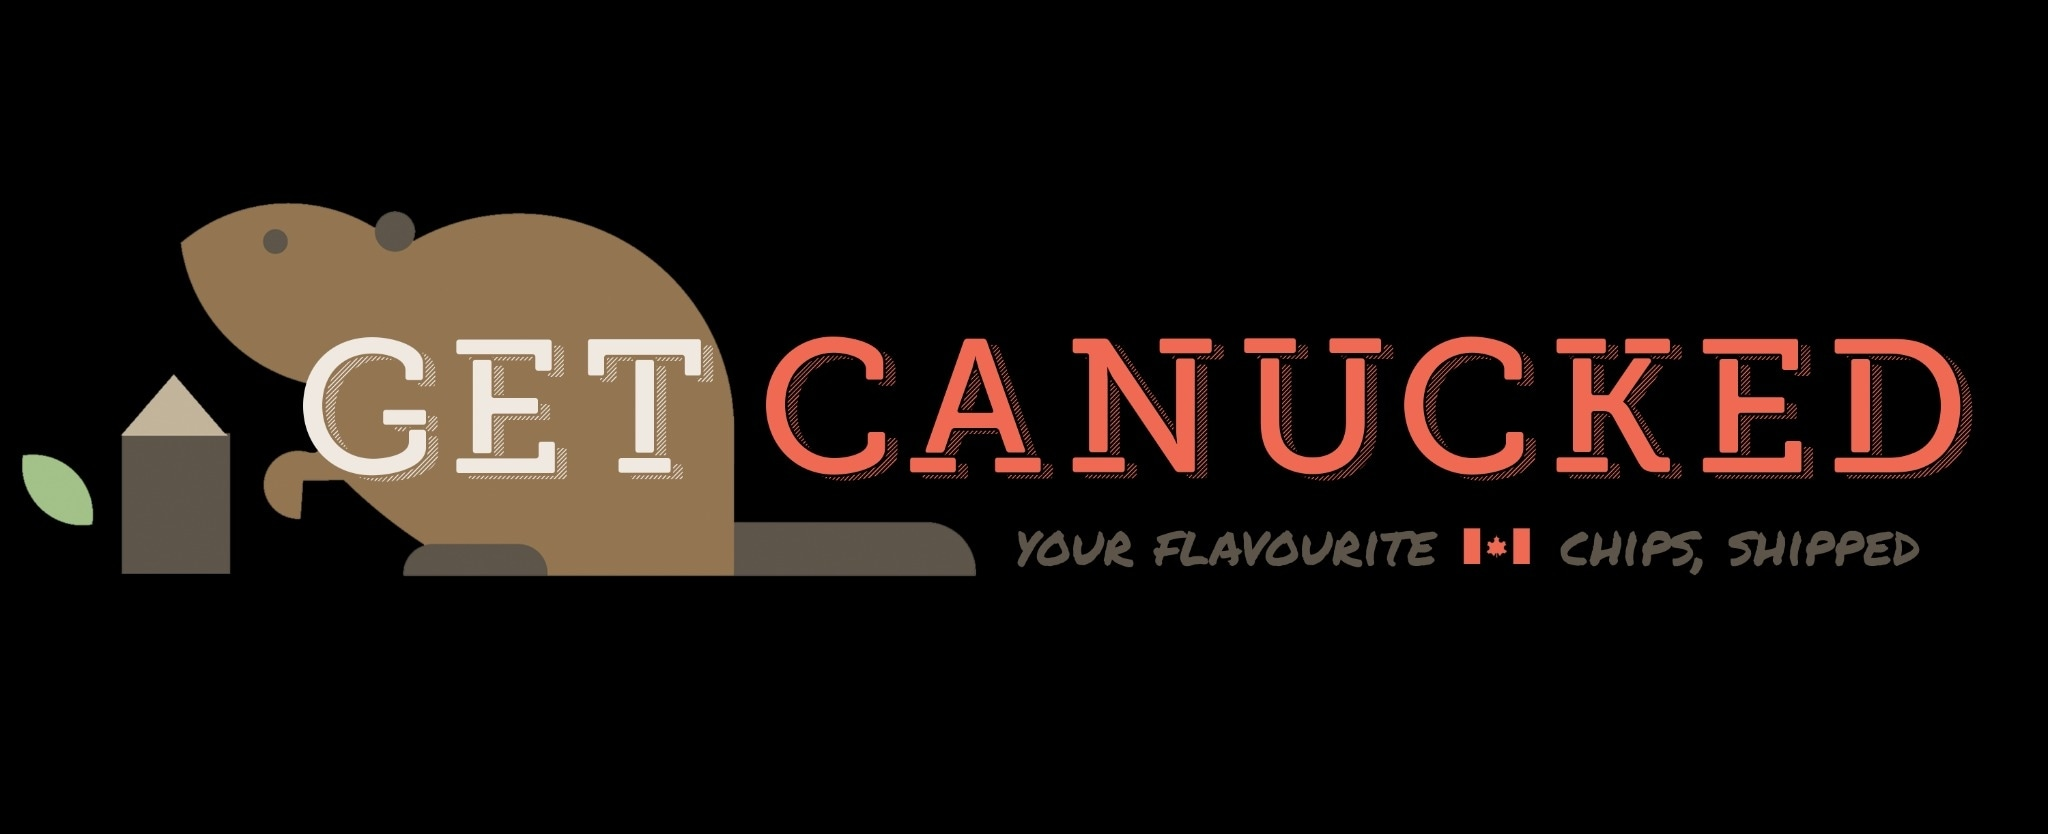 Get Canucked promo codes